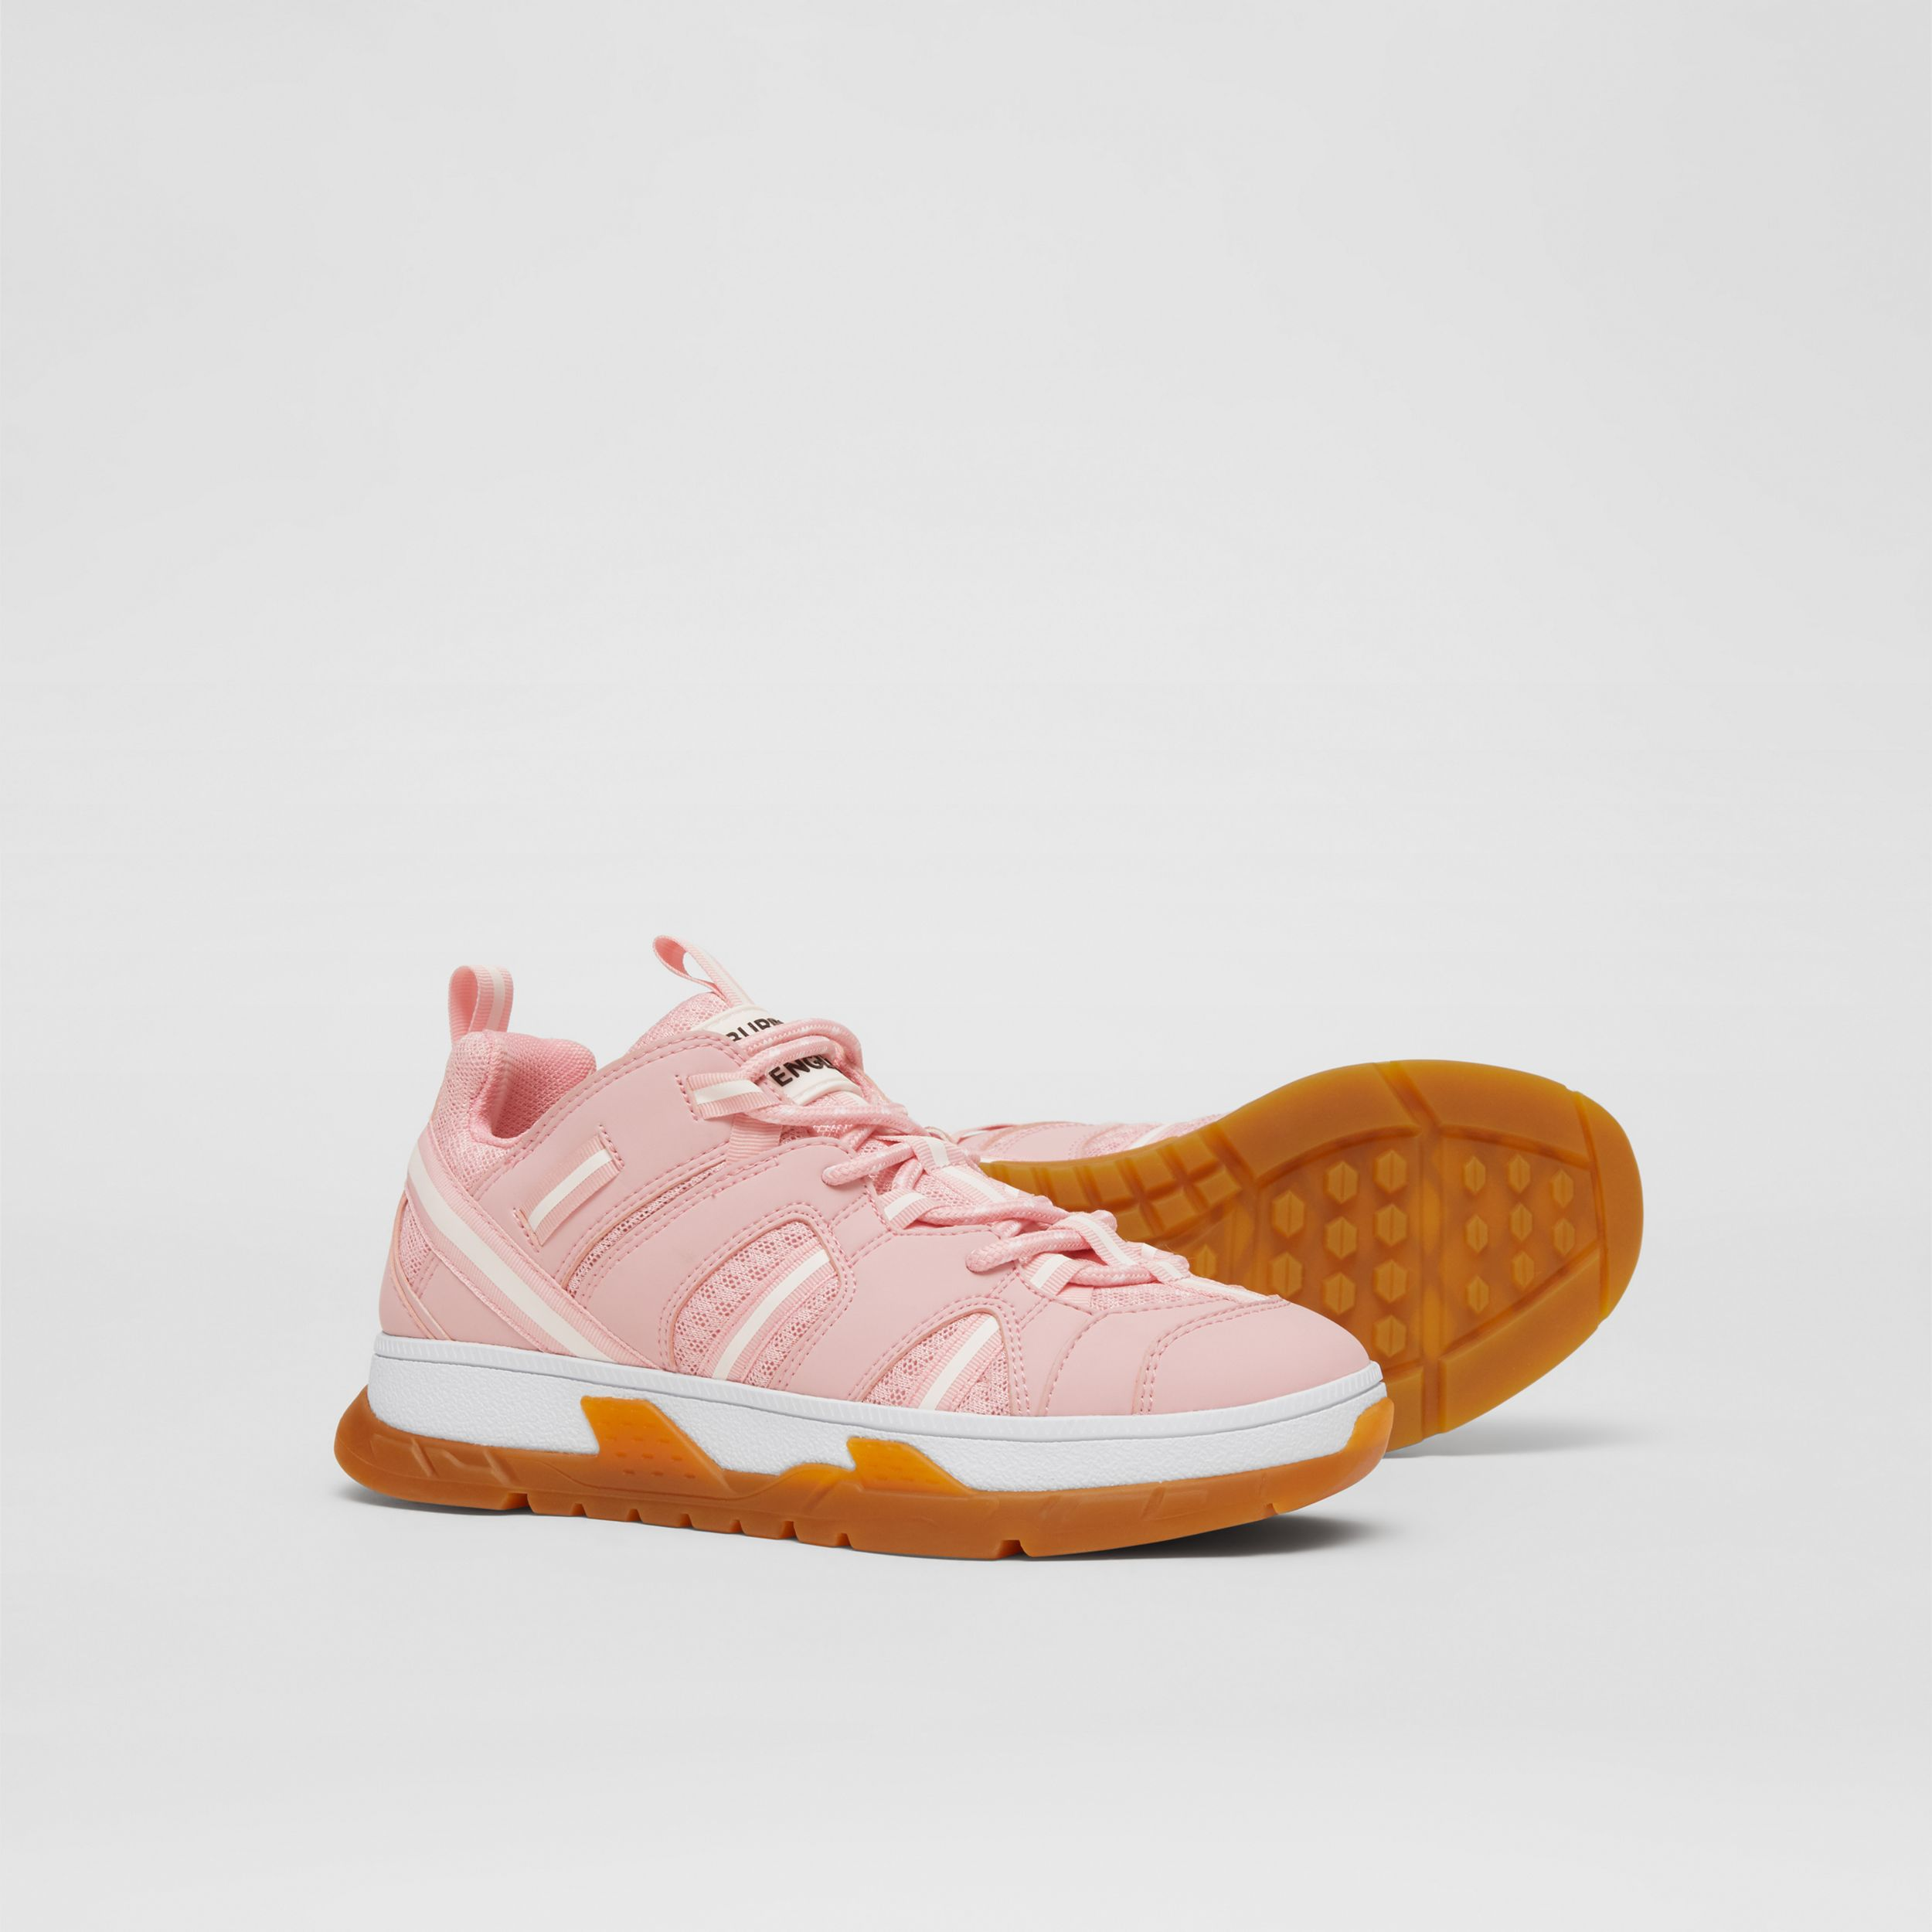 Nylon and Mesh Union Sneakers in Candy Pink - Children | Burberry Canada - 4